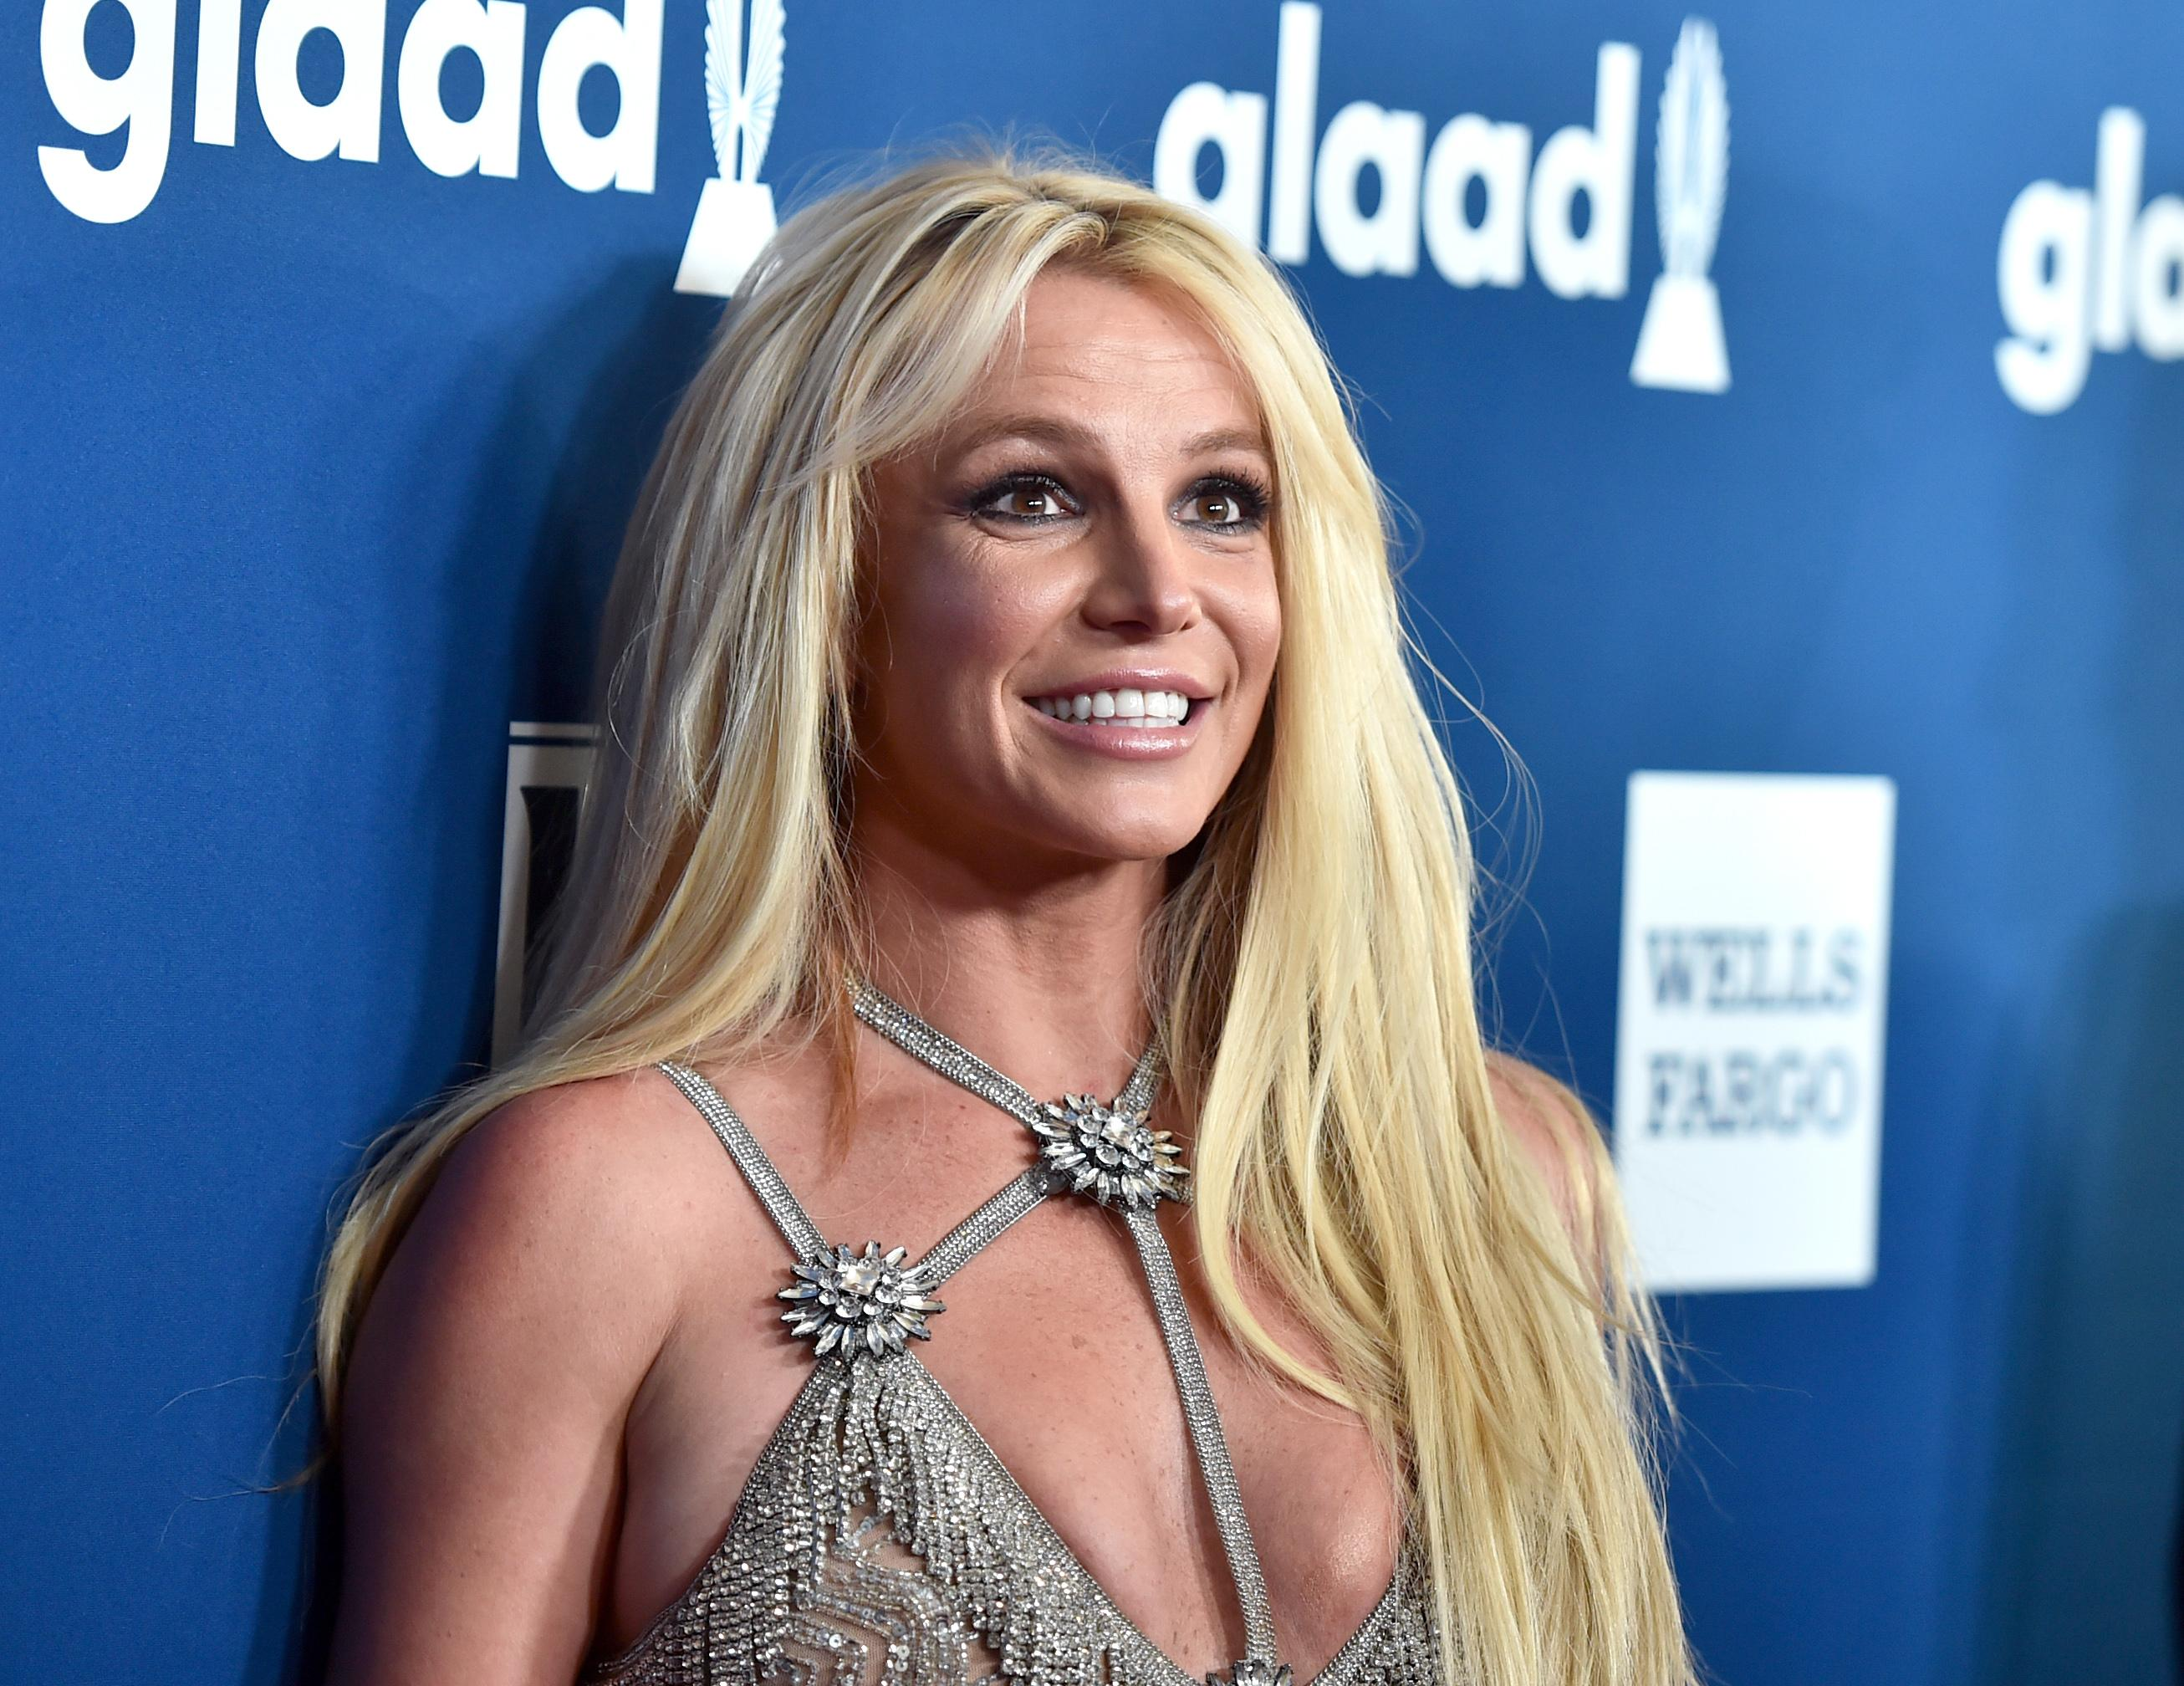 What's Wrong With Britney Spears? Here's What We Know